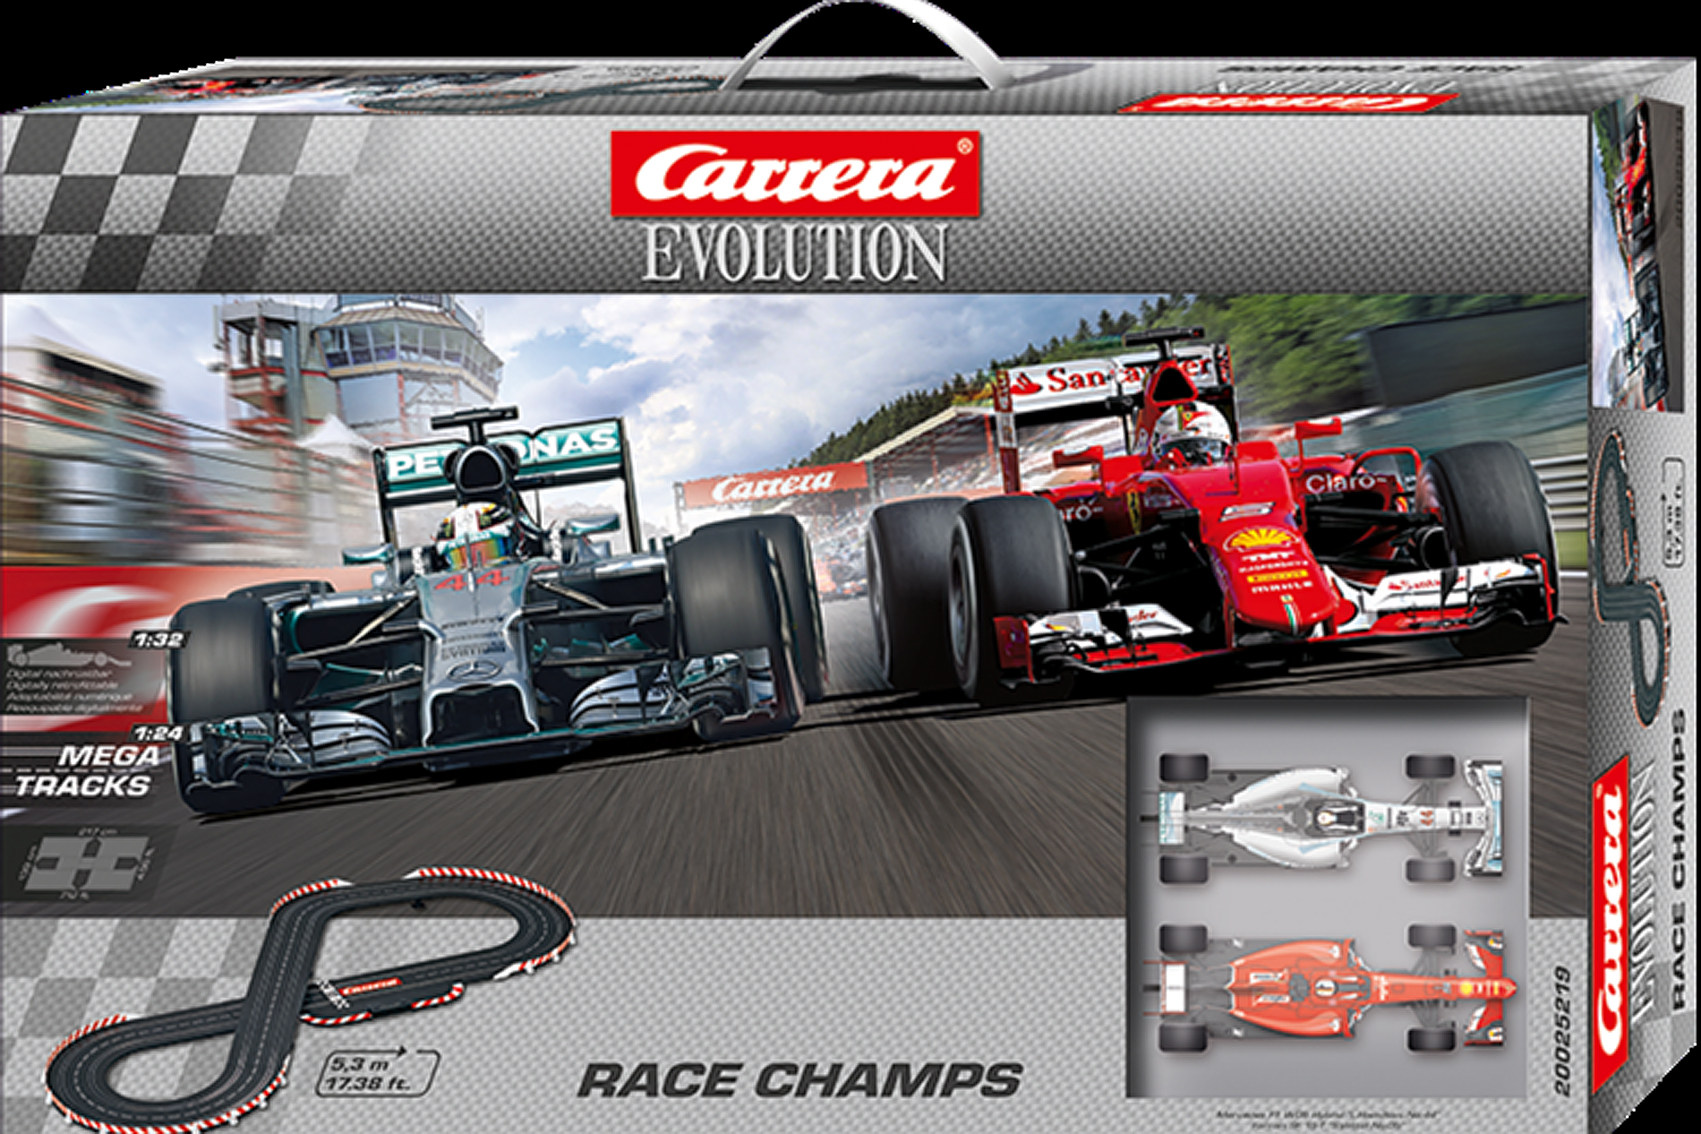 Carrera Evolution Set Race Champs 1/32 Hamilton Vettel